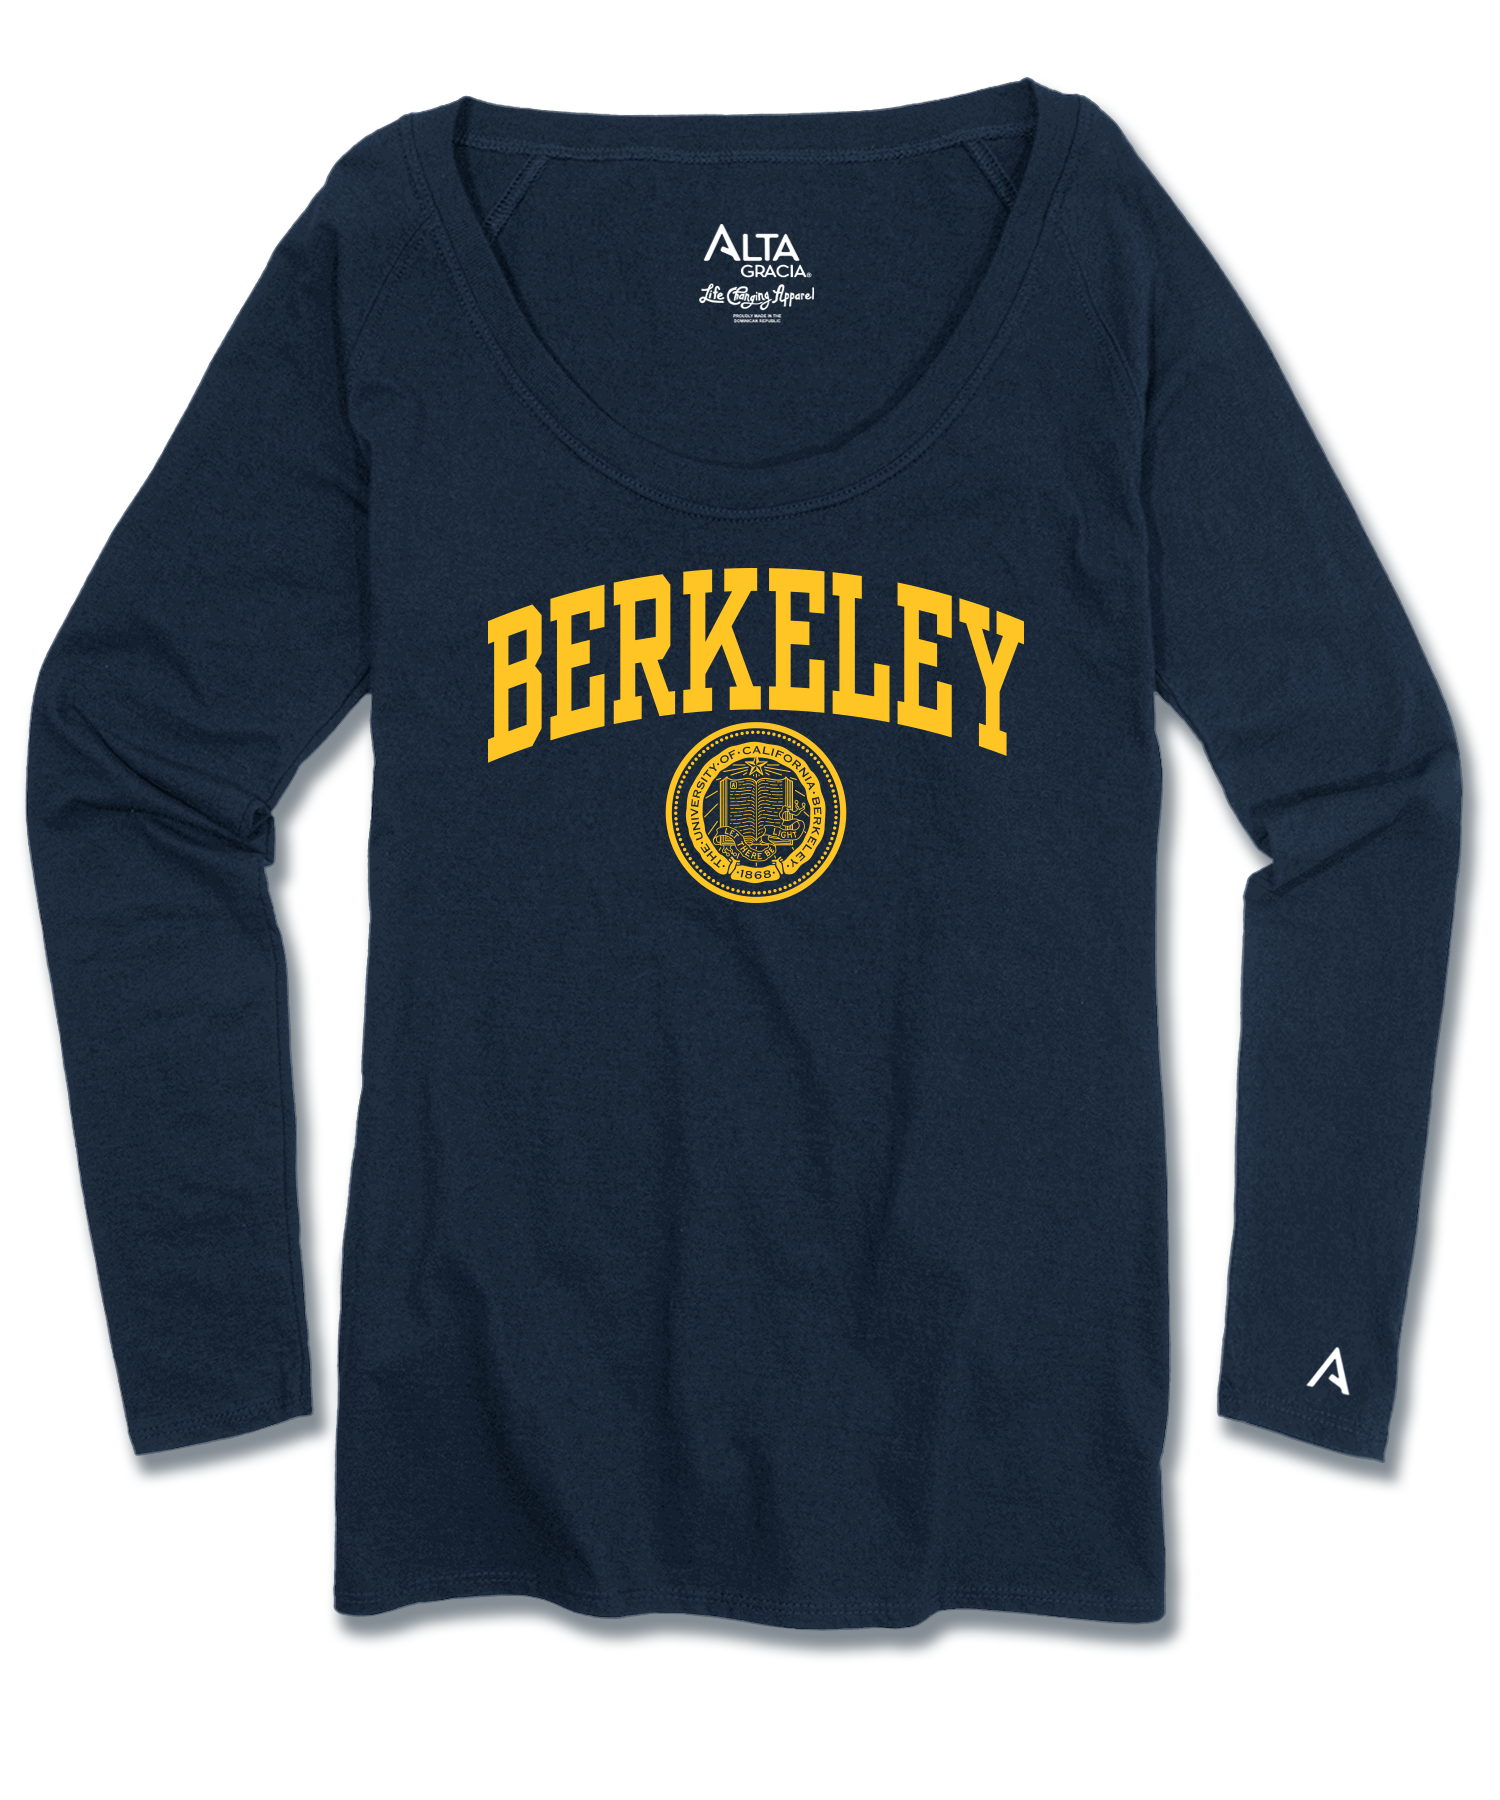 "Women's Long Sleeve Scoop Neck Raglan Tee ""Berkeley"""